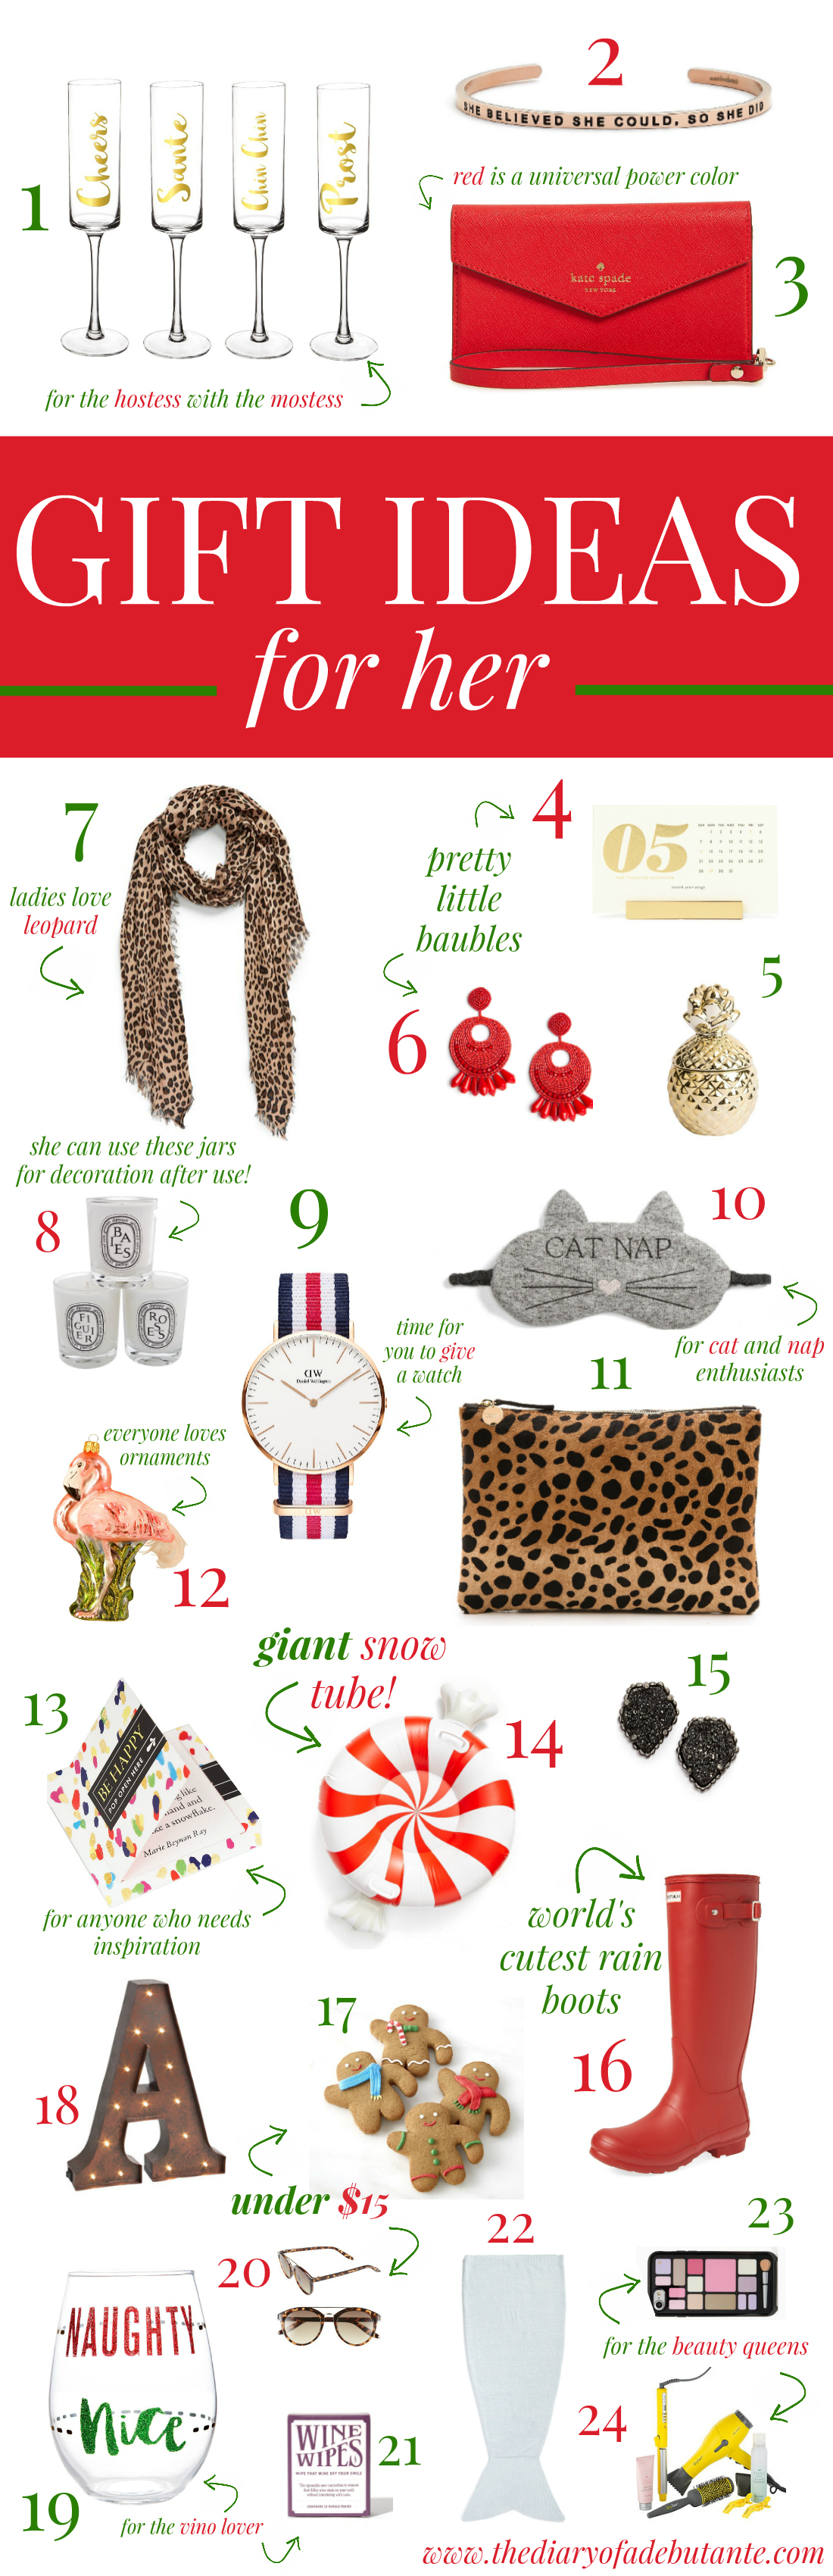 24 of the best christmas gift ideas for her in 2016 for Christmas gift ideas for her